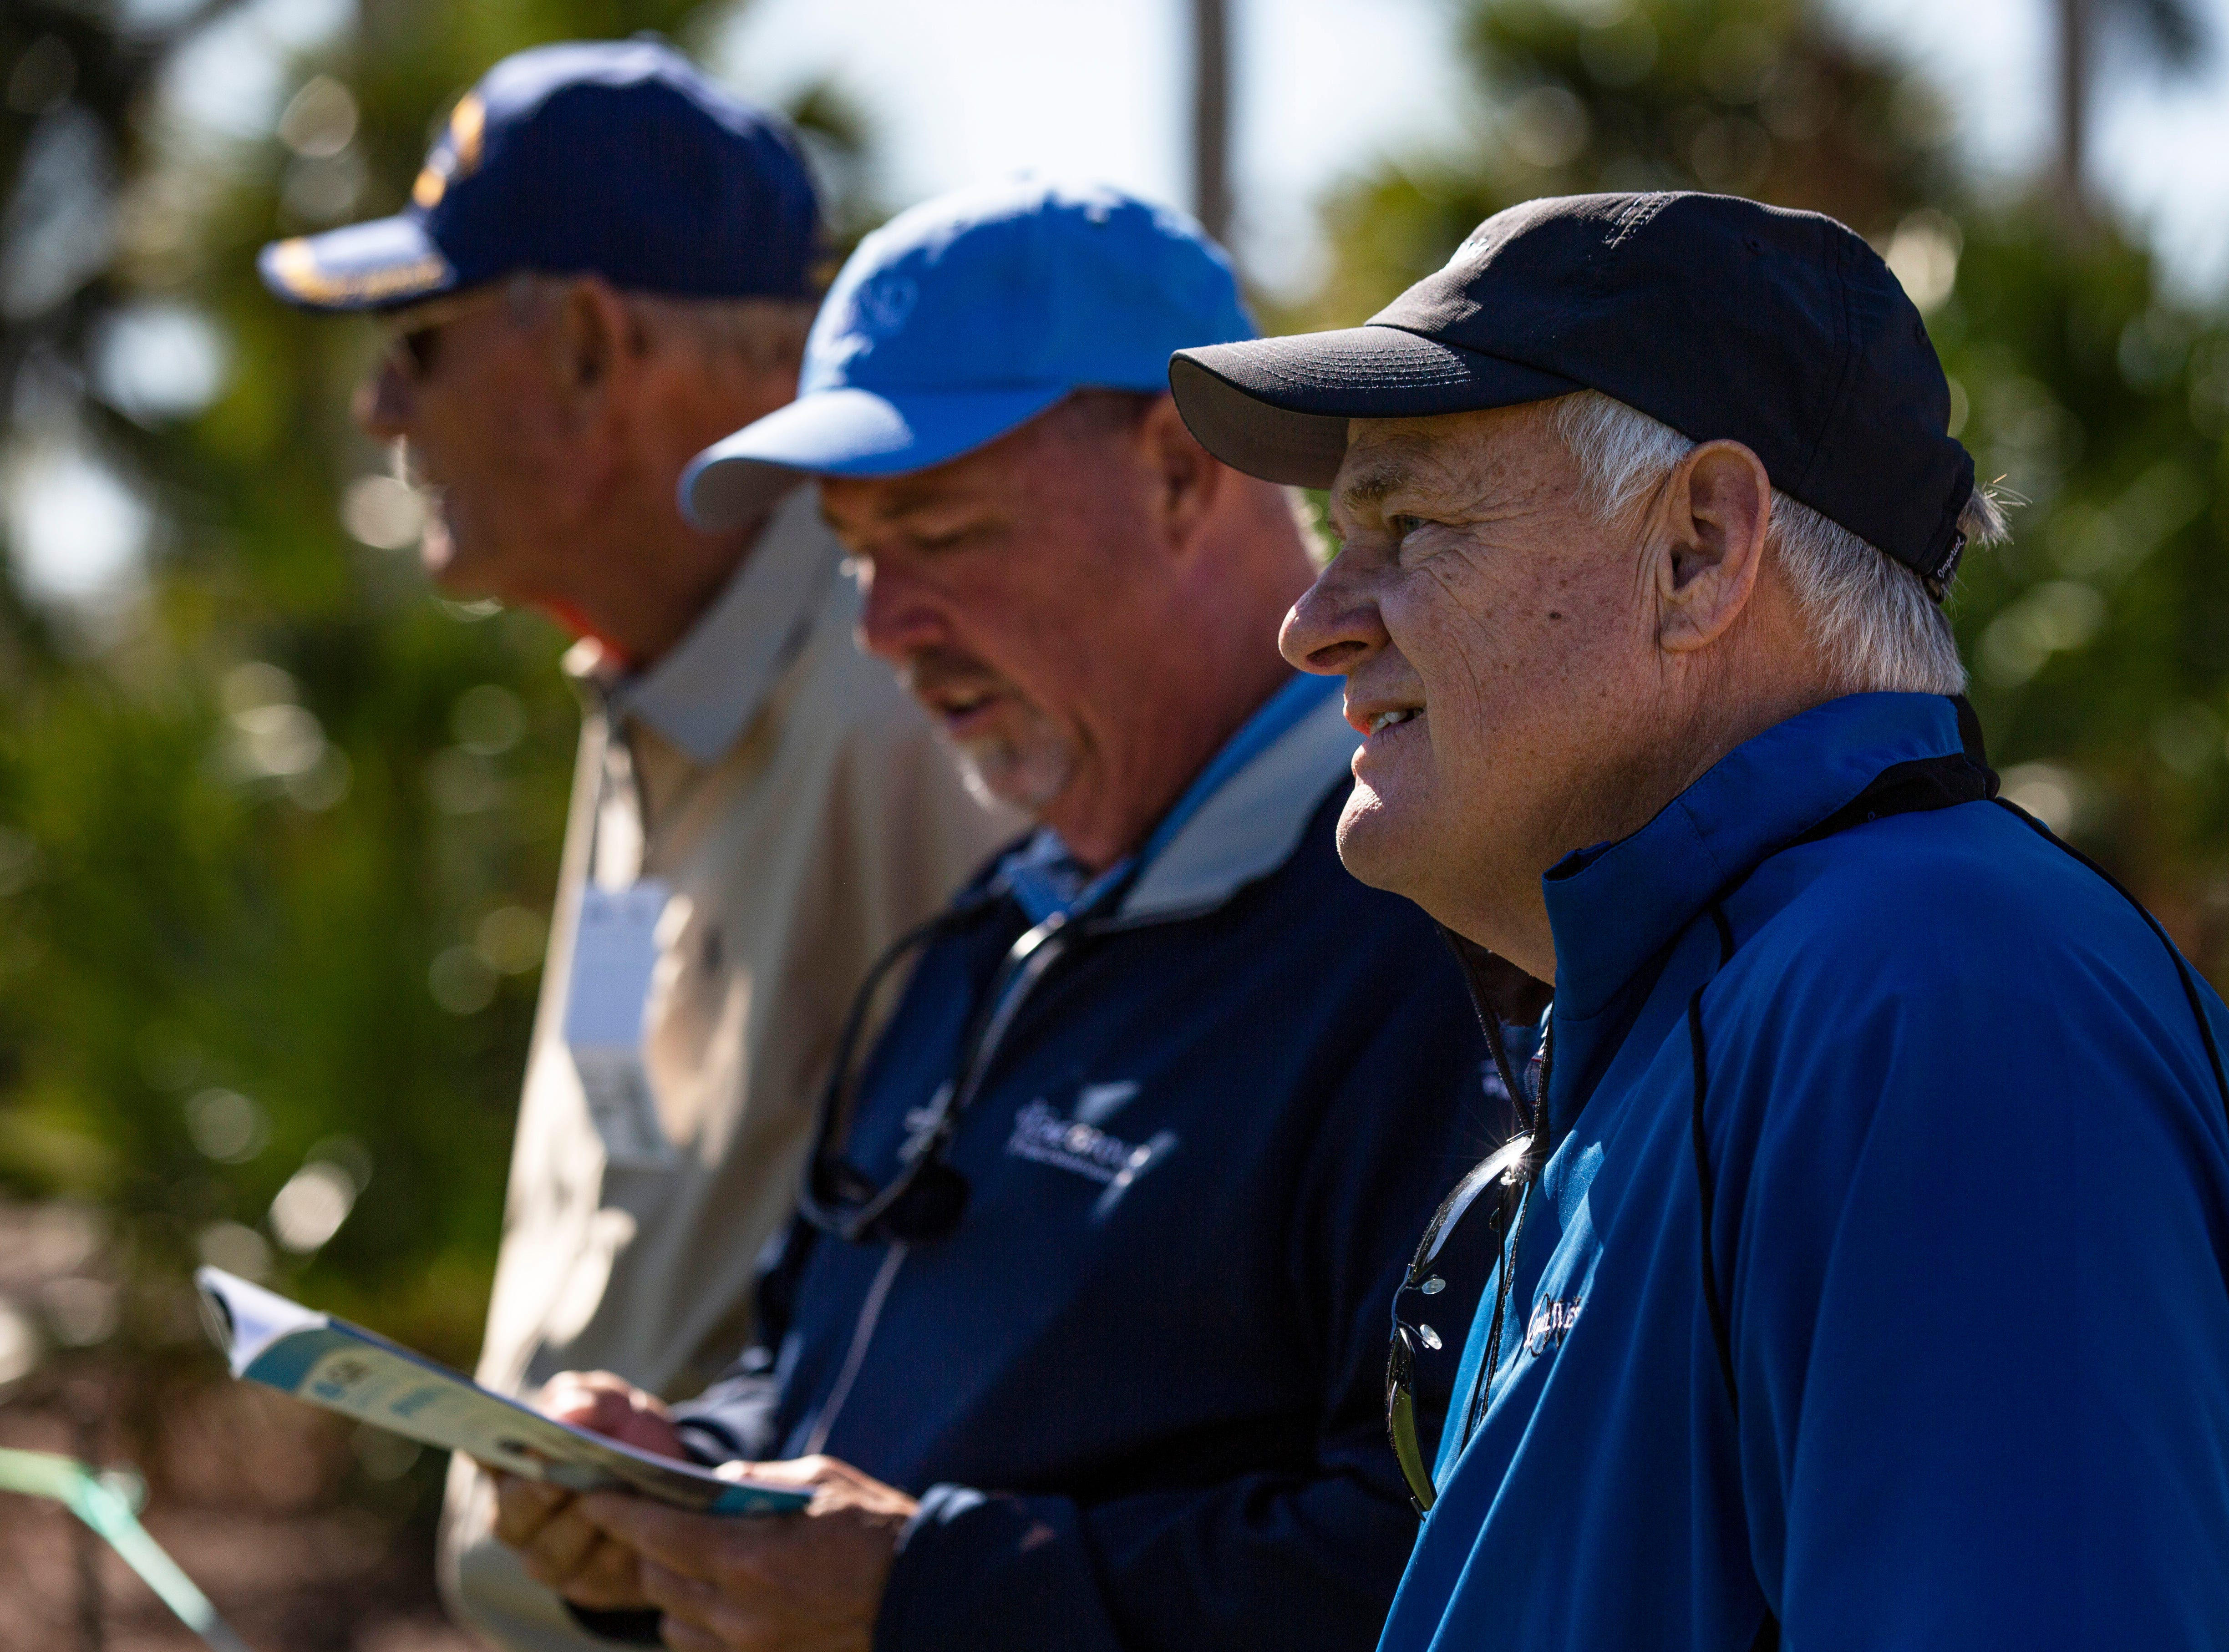 From the right, Andy Pickering, Joe Isnardi and Jim LaFevre watch various groups during the 30th annual QBE Shootout Pro - Amateur round two, on Thursday, Dec. 6, 2018, at Tiburón Golf Club in Naples.